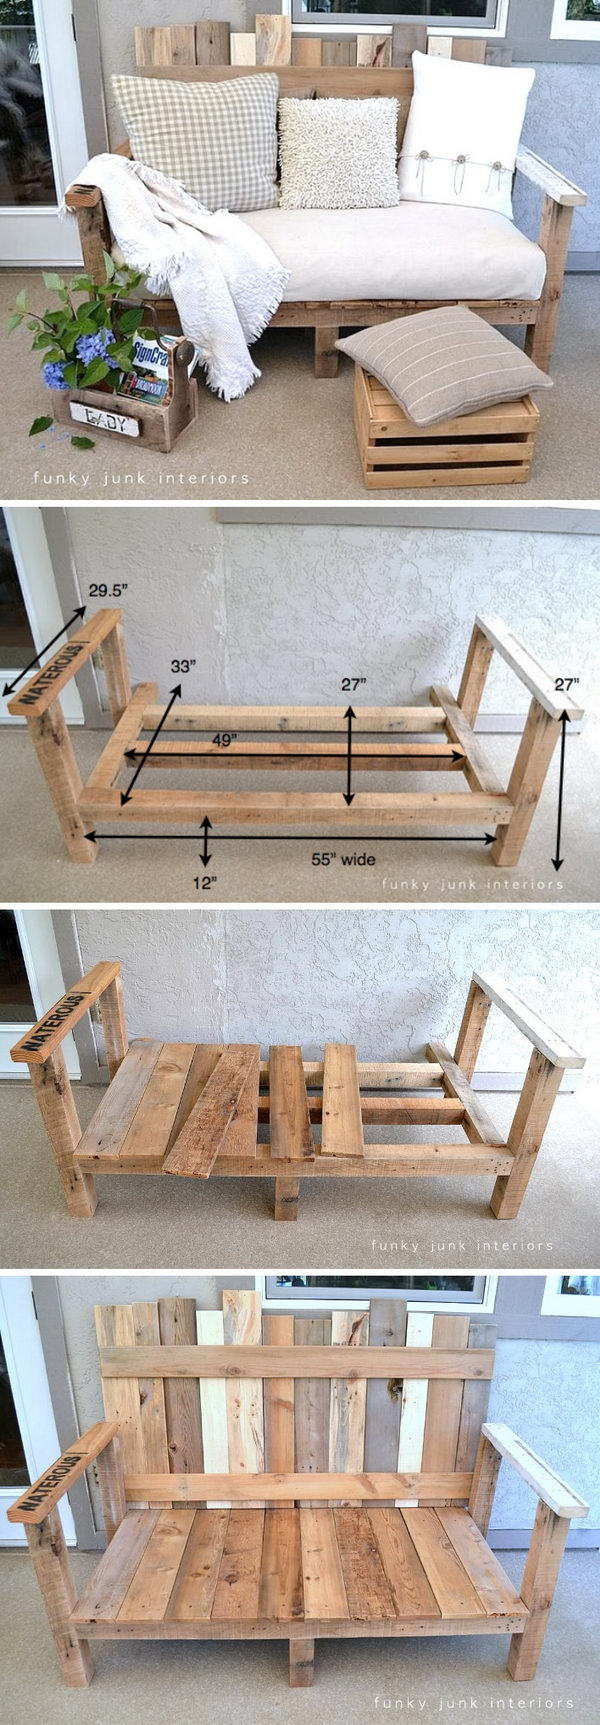 25 Easy Diy Pallet Projects For Home Decor 2017